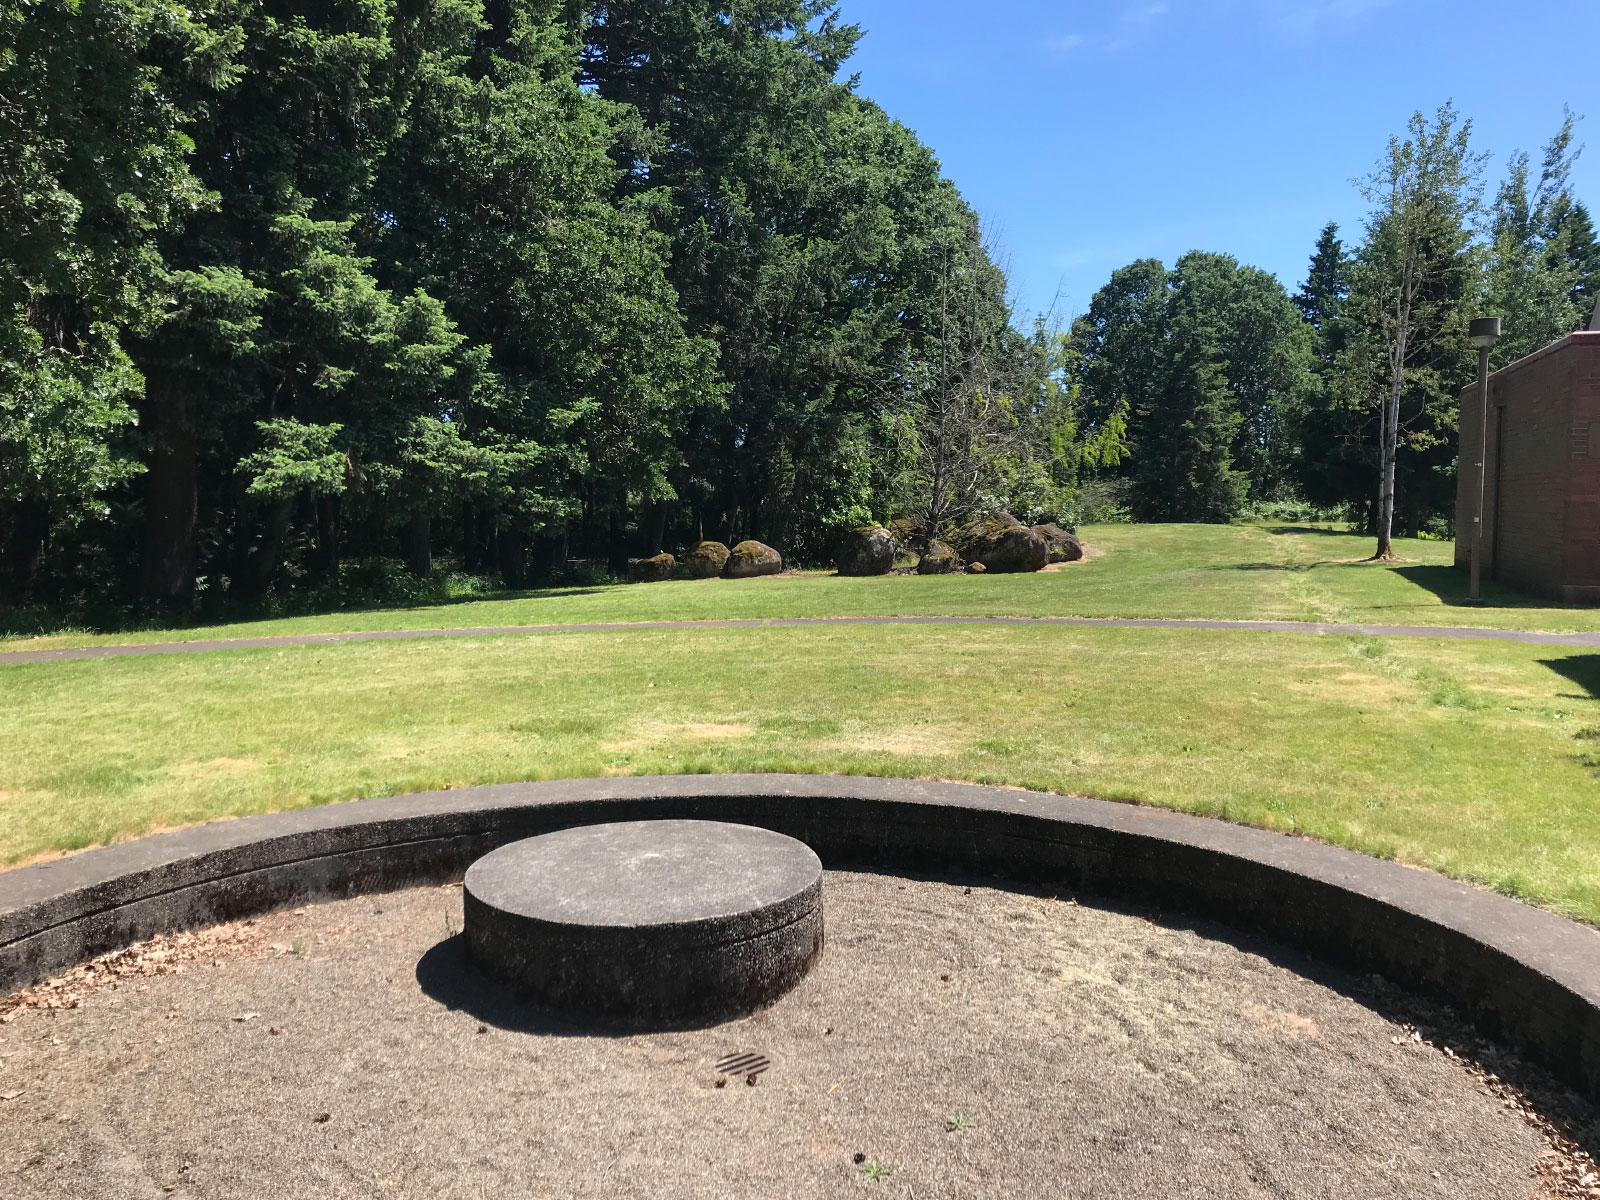 A circular, stone structure pit with sand in an open field on the Oregon City campus